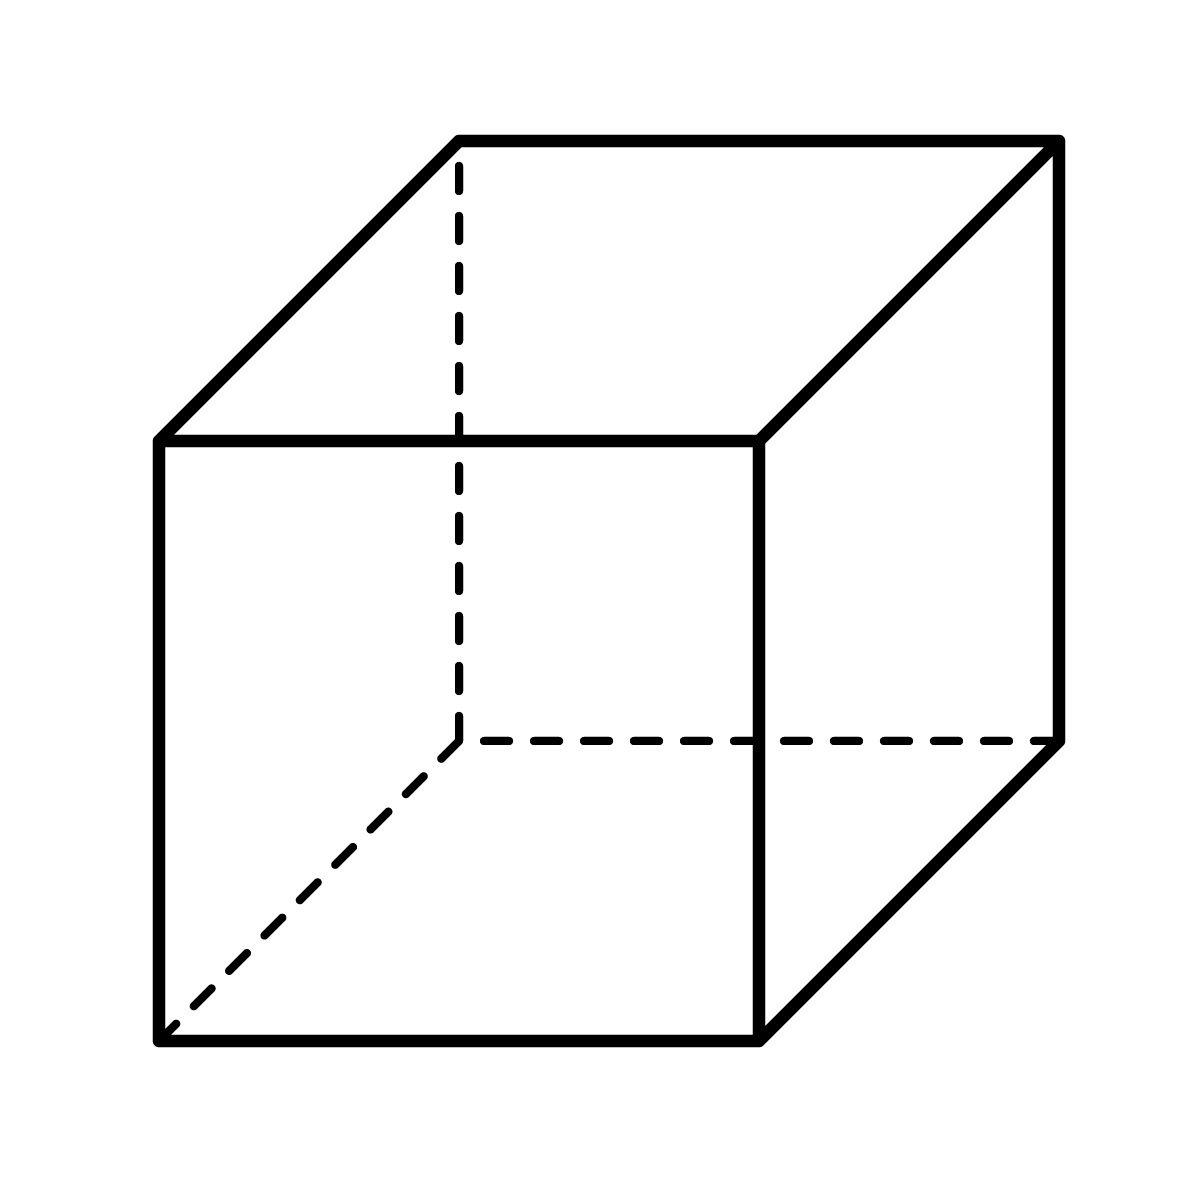 3d shapes clipart black and white rectangular prism jpg free library Free Solid Rectangle Cliparts, Download Free Clip Art, Free Clip Art ... jpg free library